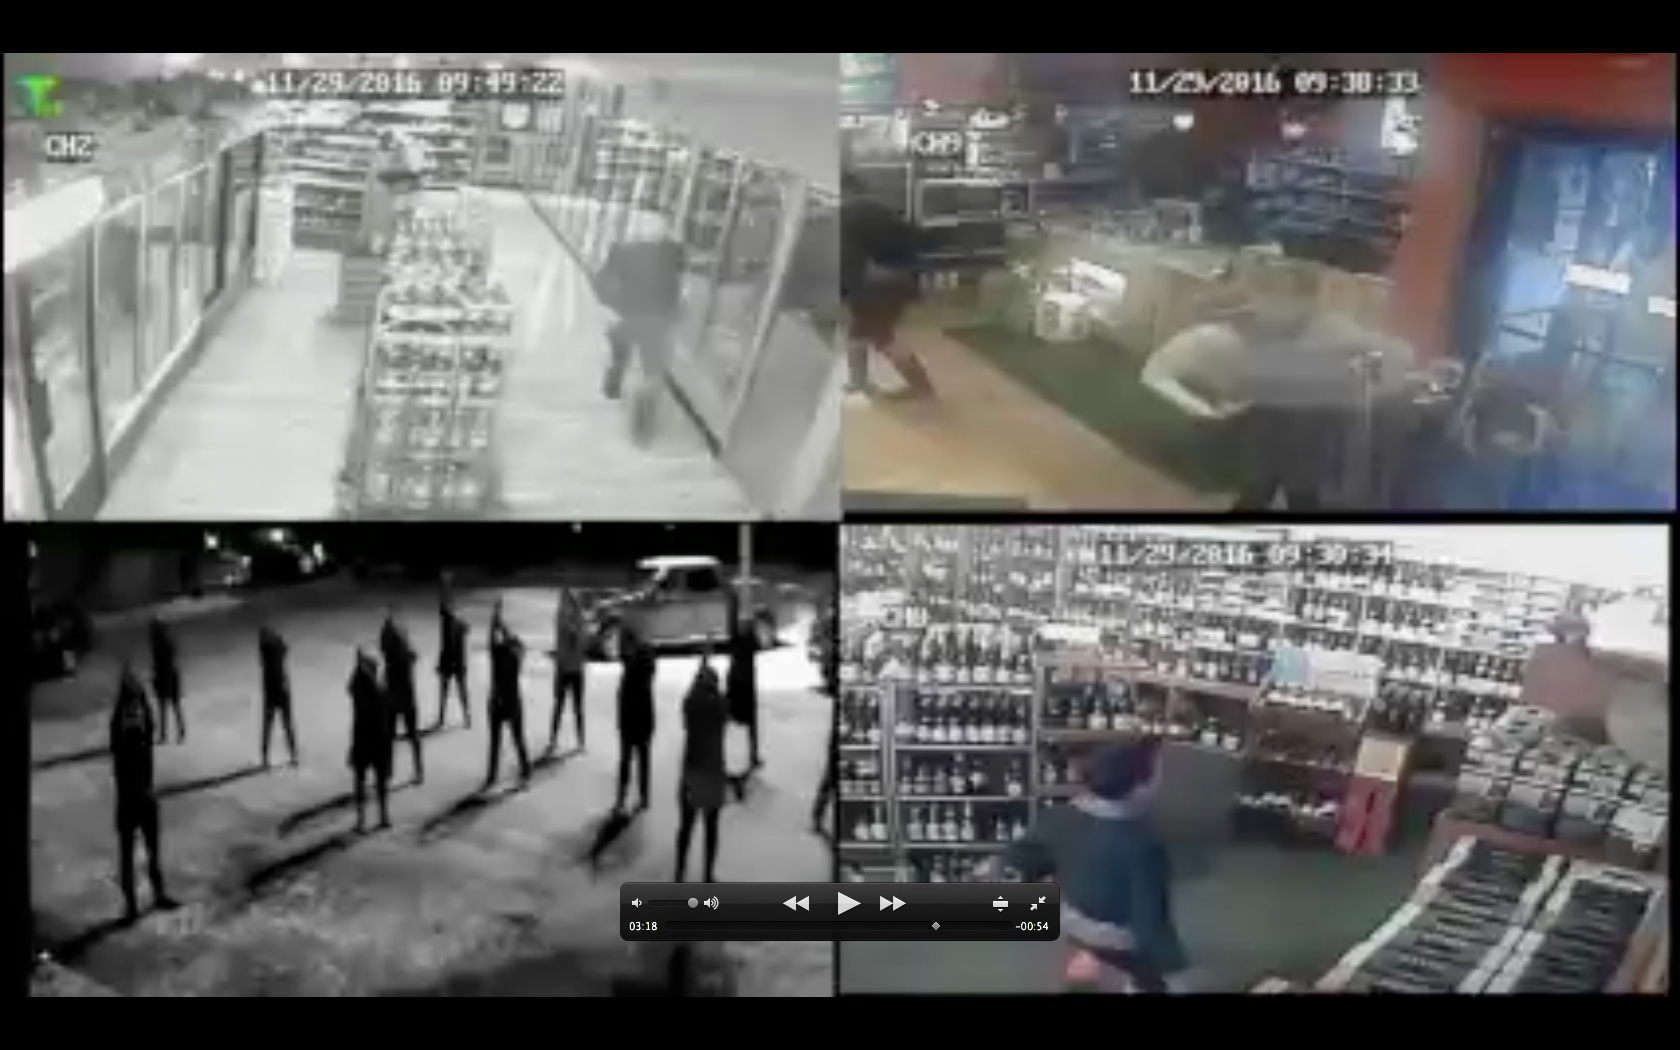 Dancers do a flash mob dance recorded by surveillance cameras at local Homer businesses and city buildings.